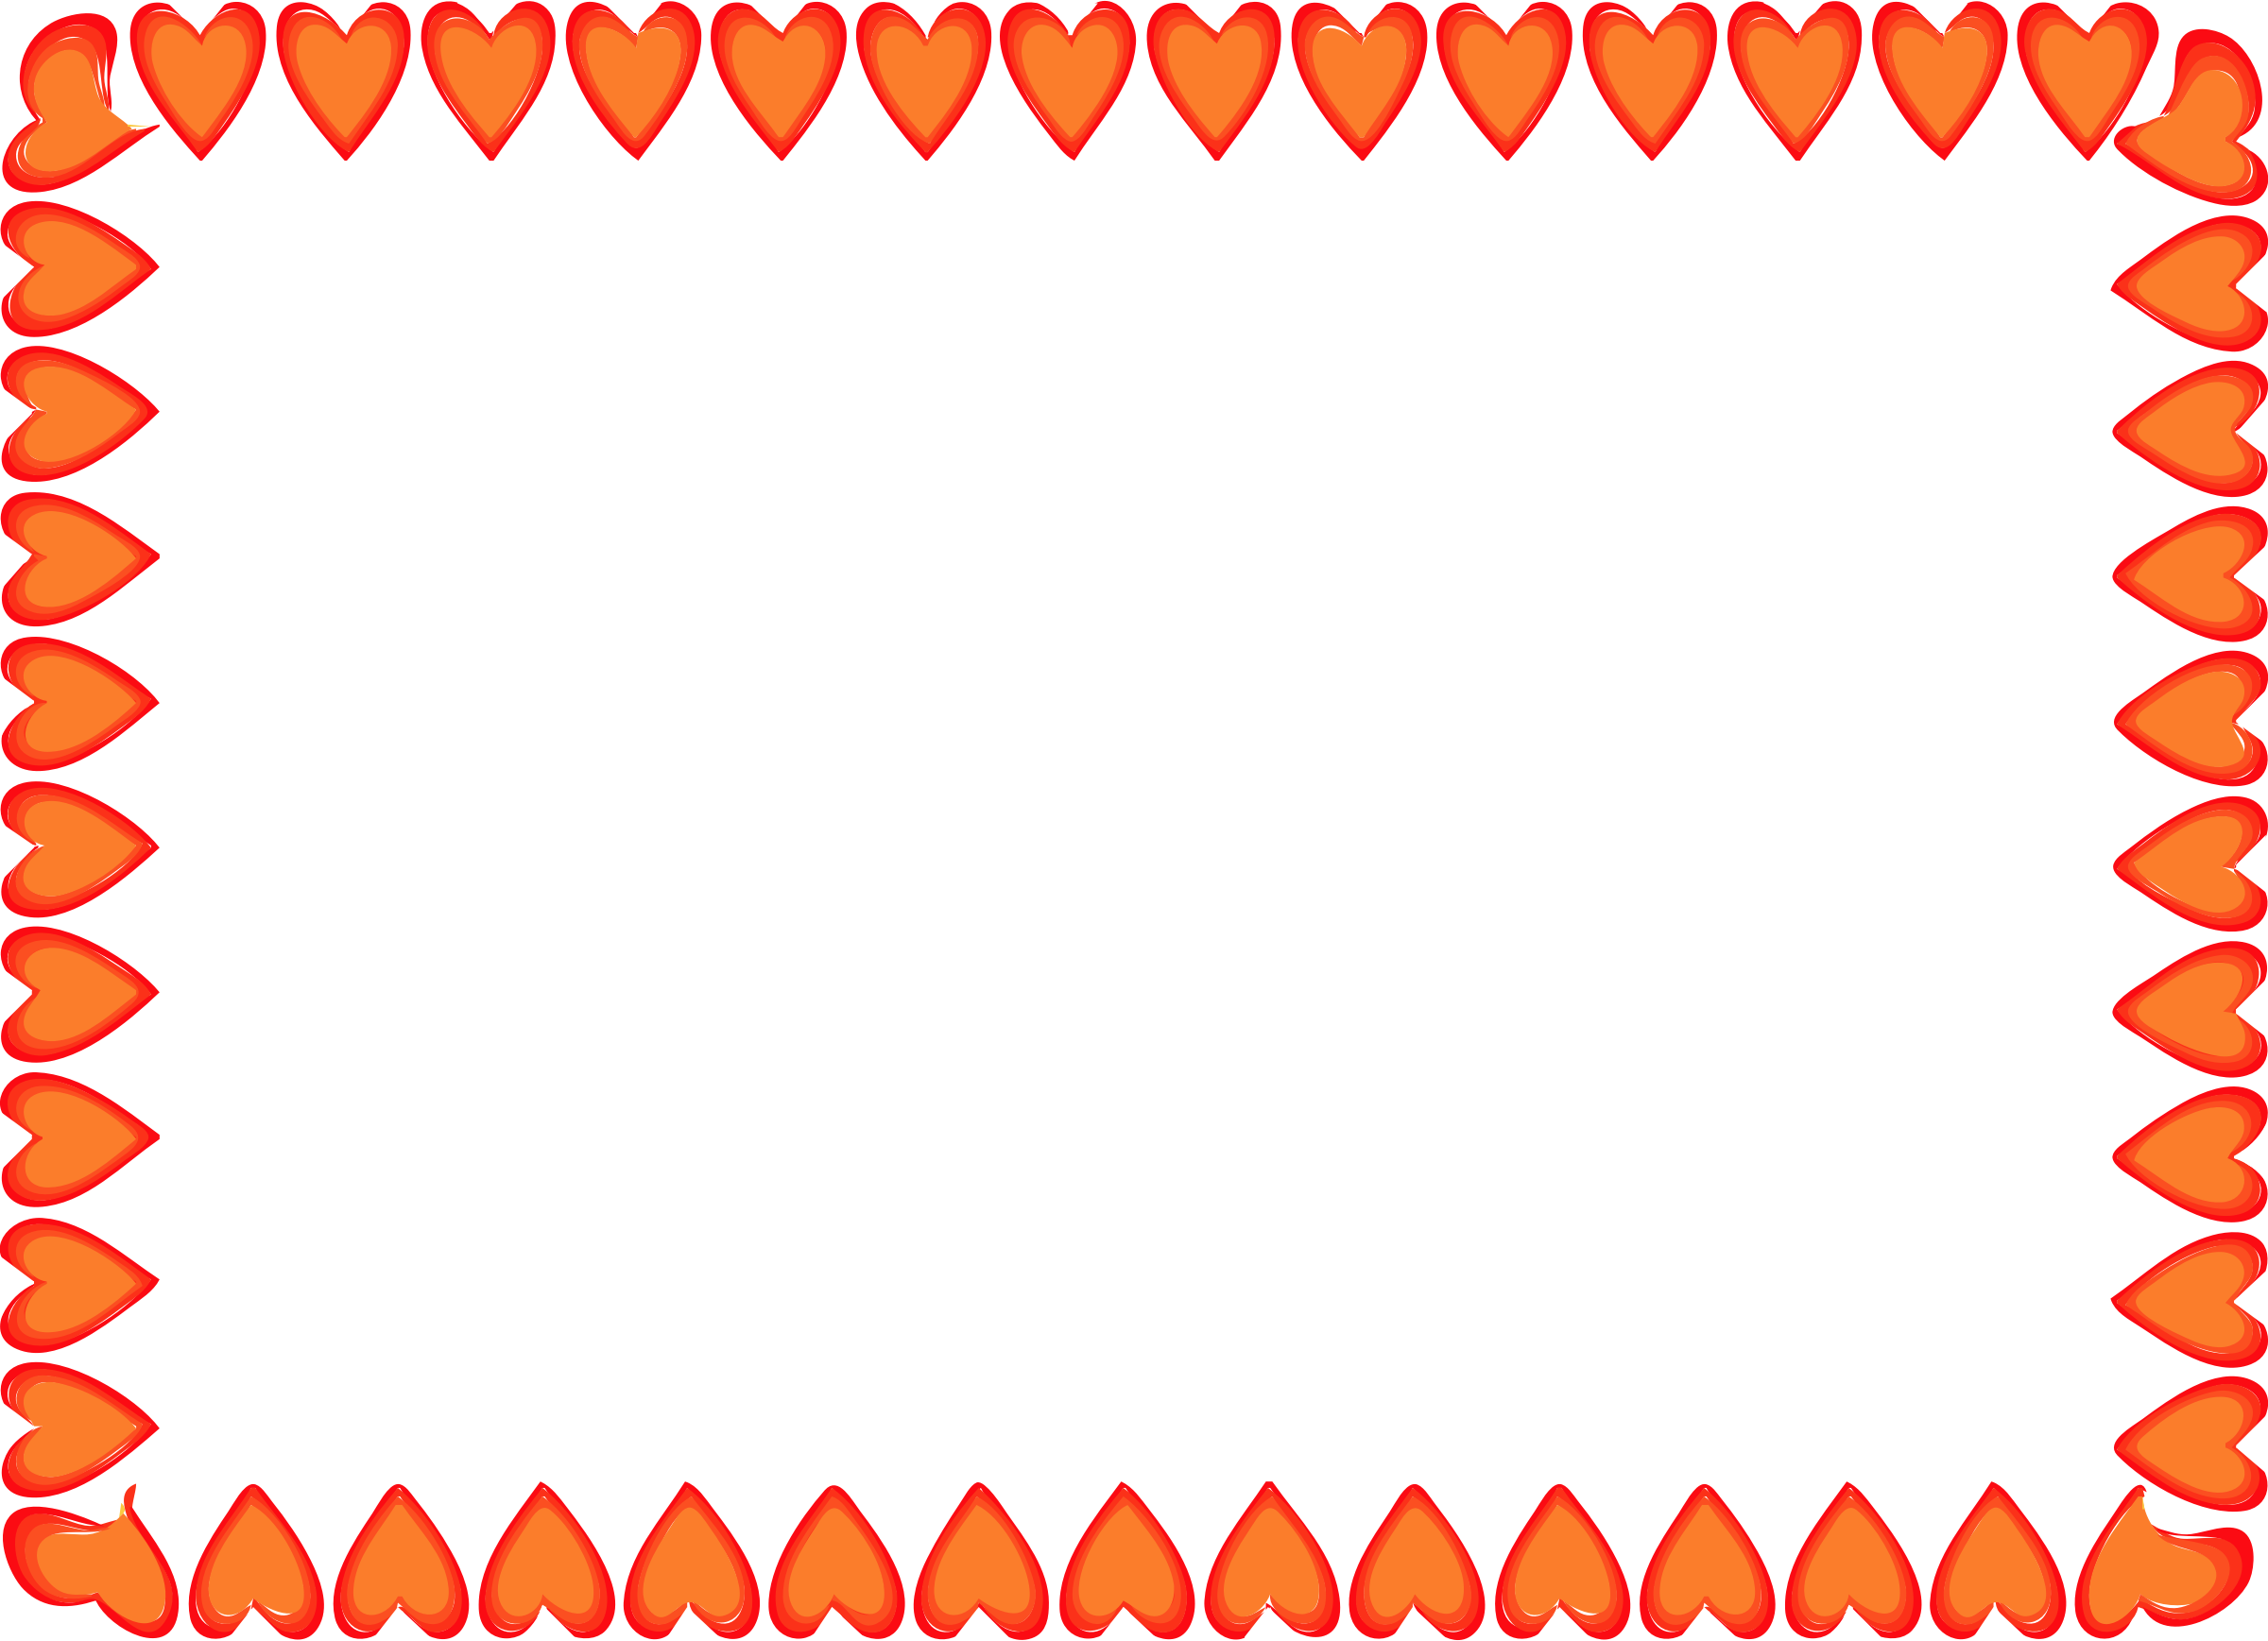 This free Icons Png design of Red Hearts Border PlusPng.com  - Heart Border PNG HD